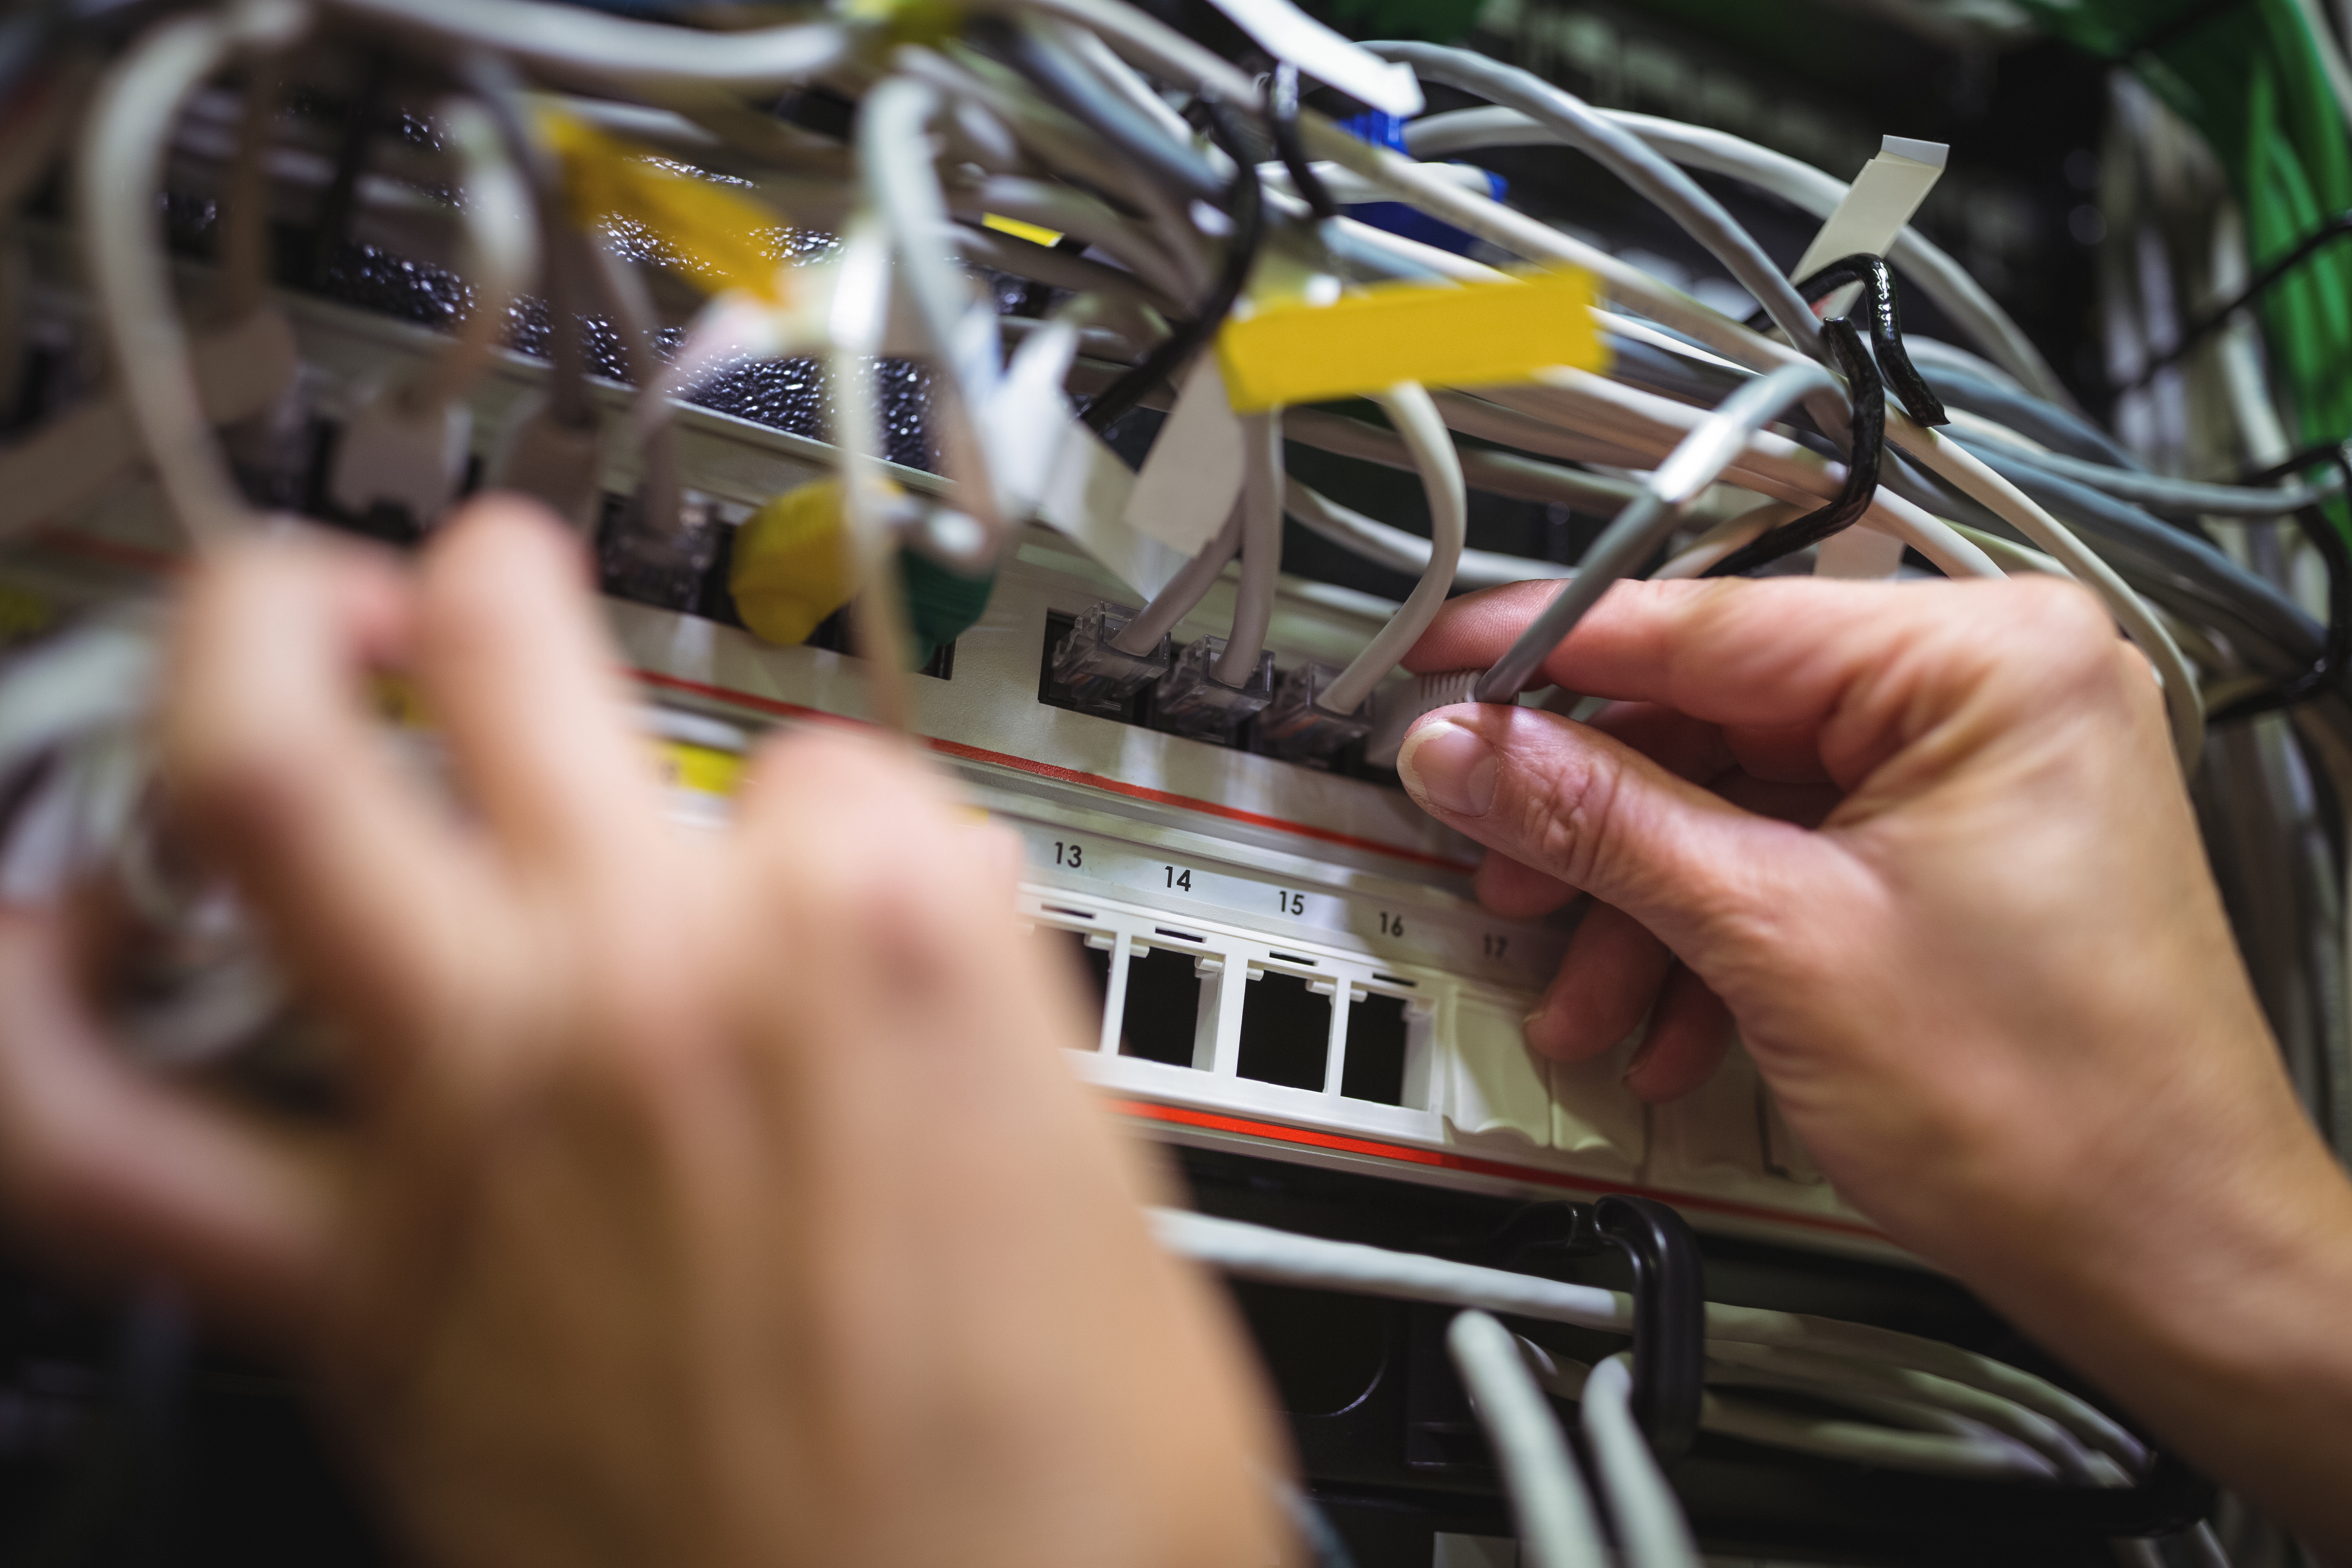 Technician plugging patch cable in a rack mounted server in server roo